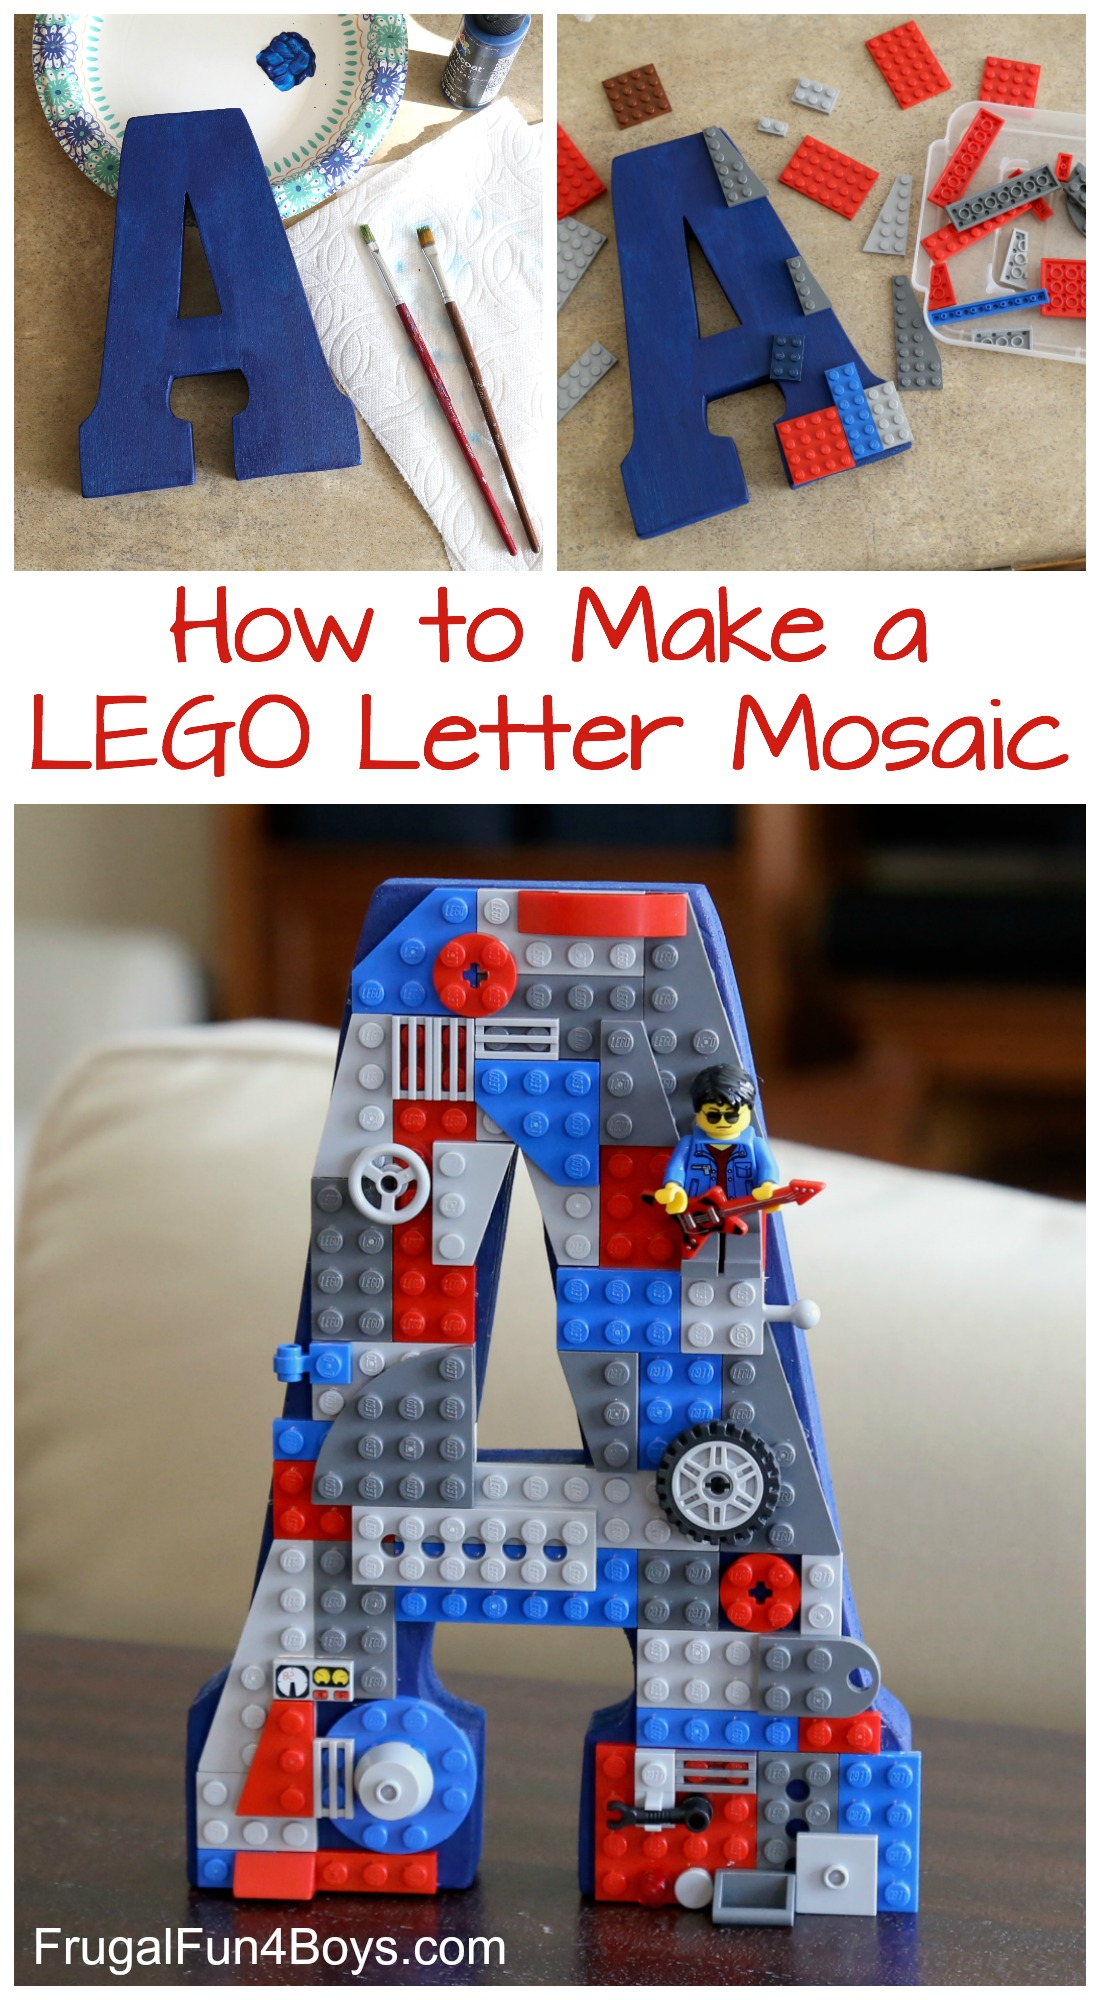 How To Make A Letter Mosaic With Lego Bricks